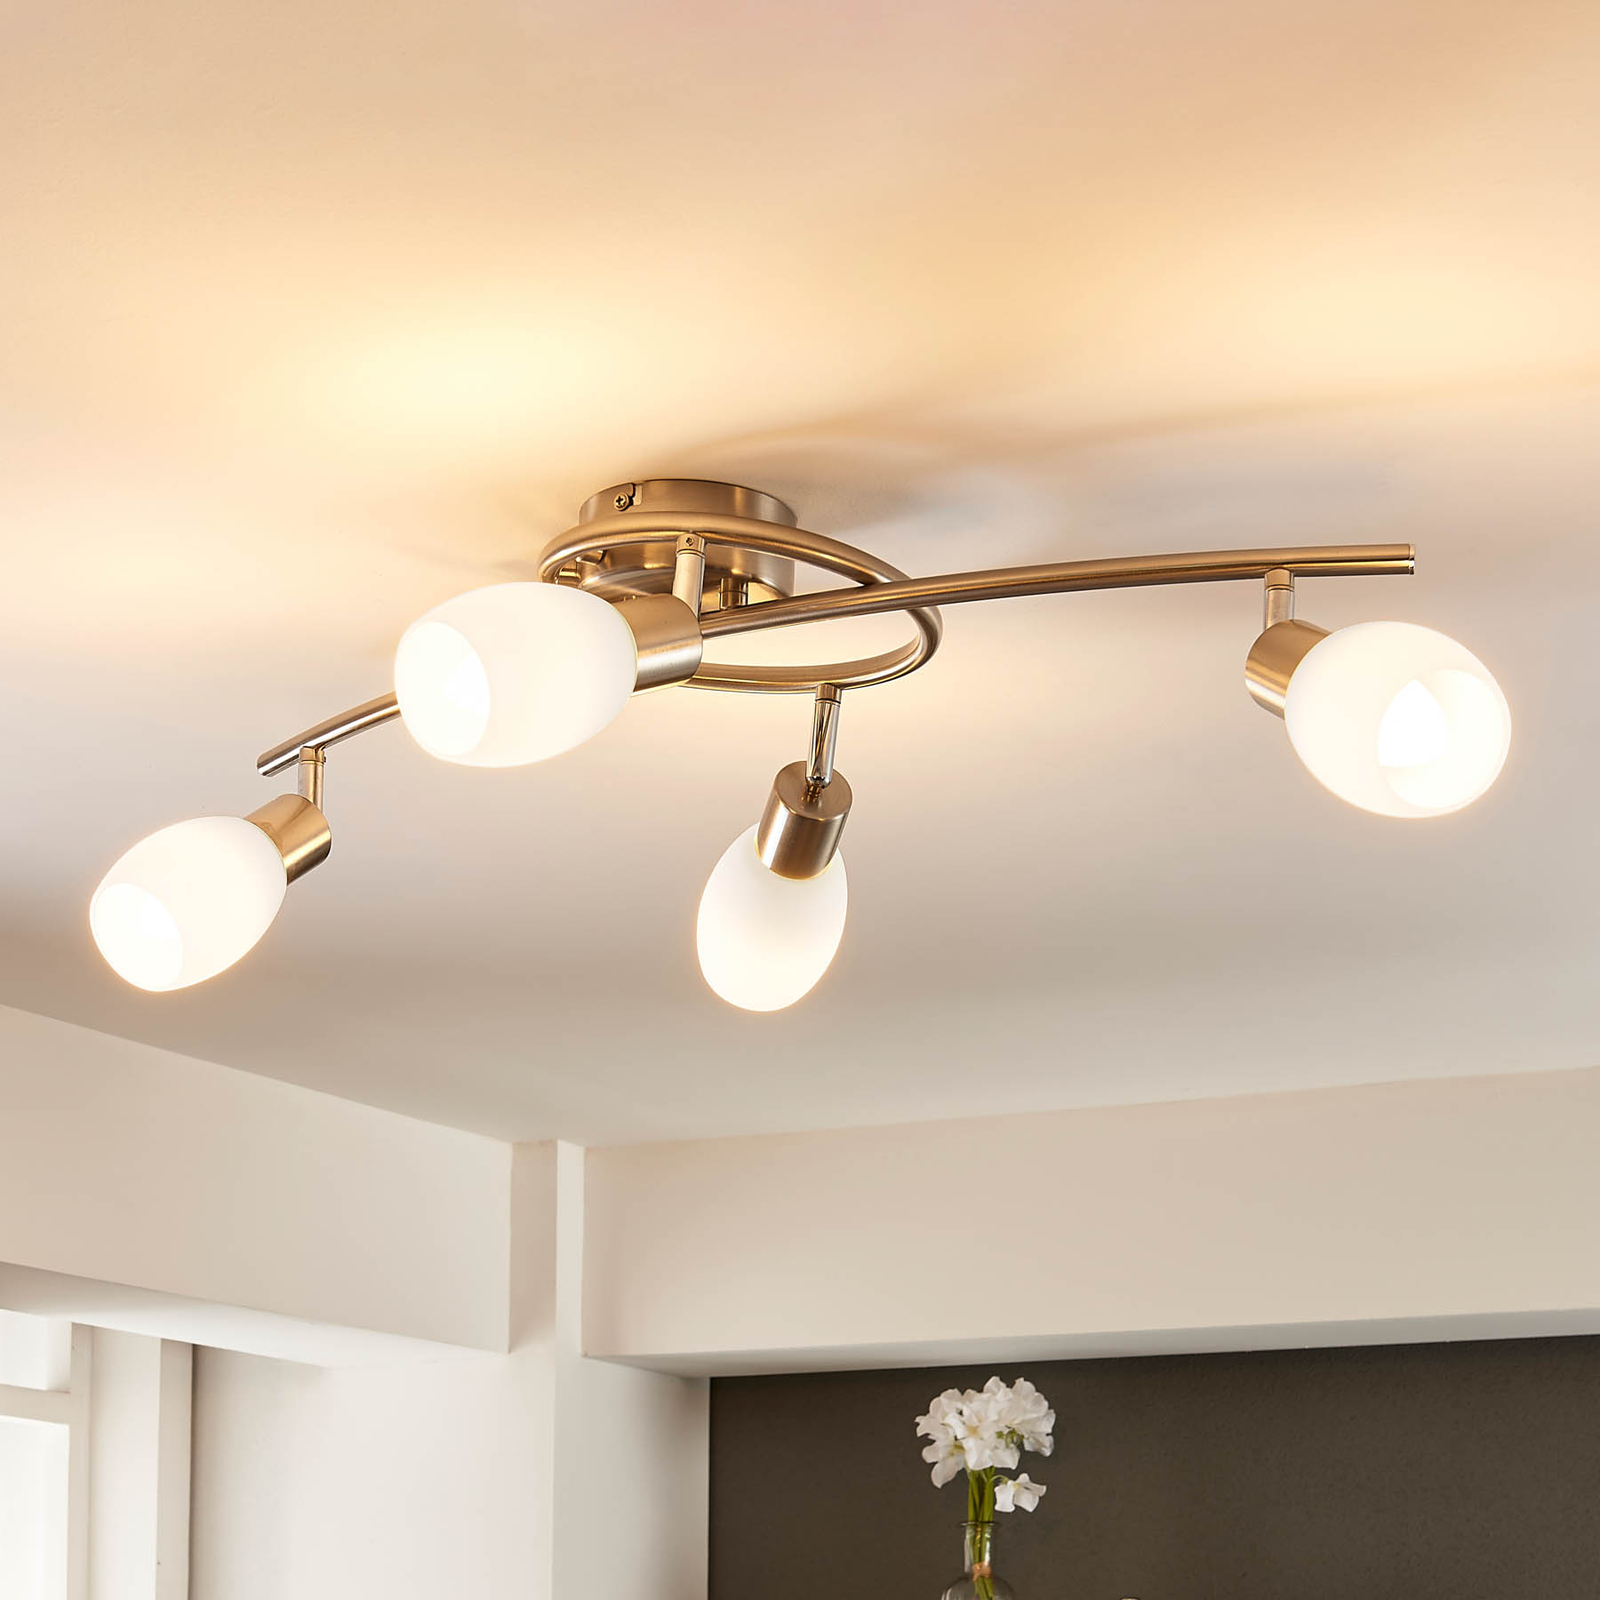 LED ceiling lamp Arda dimmable via a switch_9621268_1